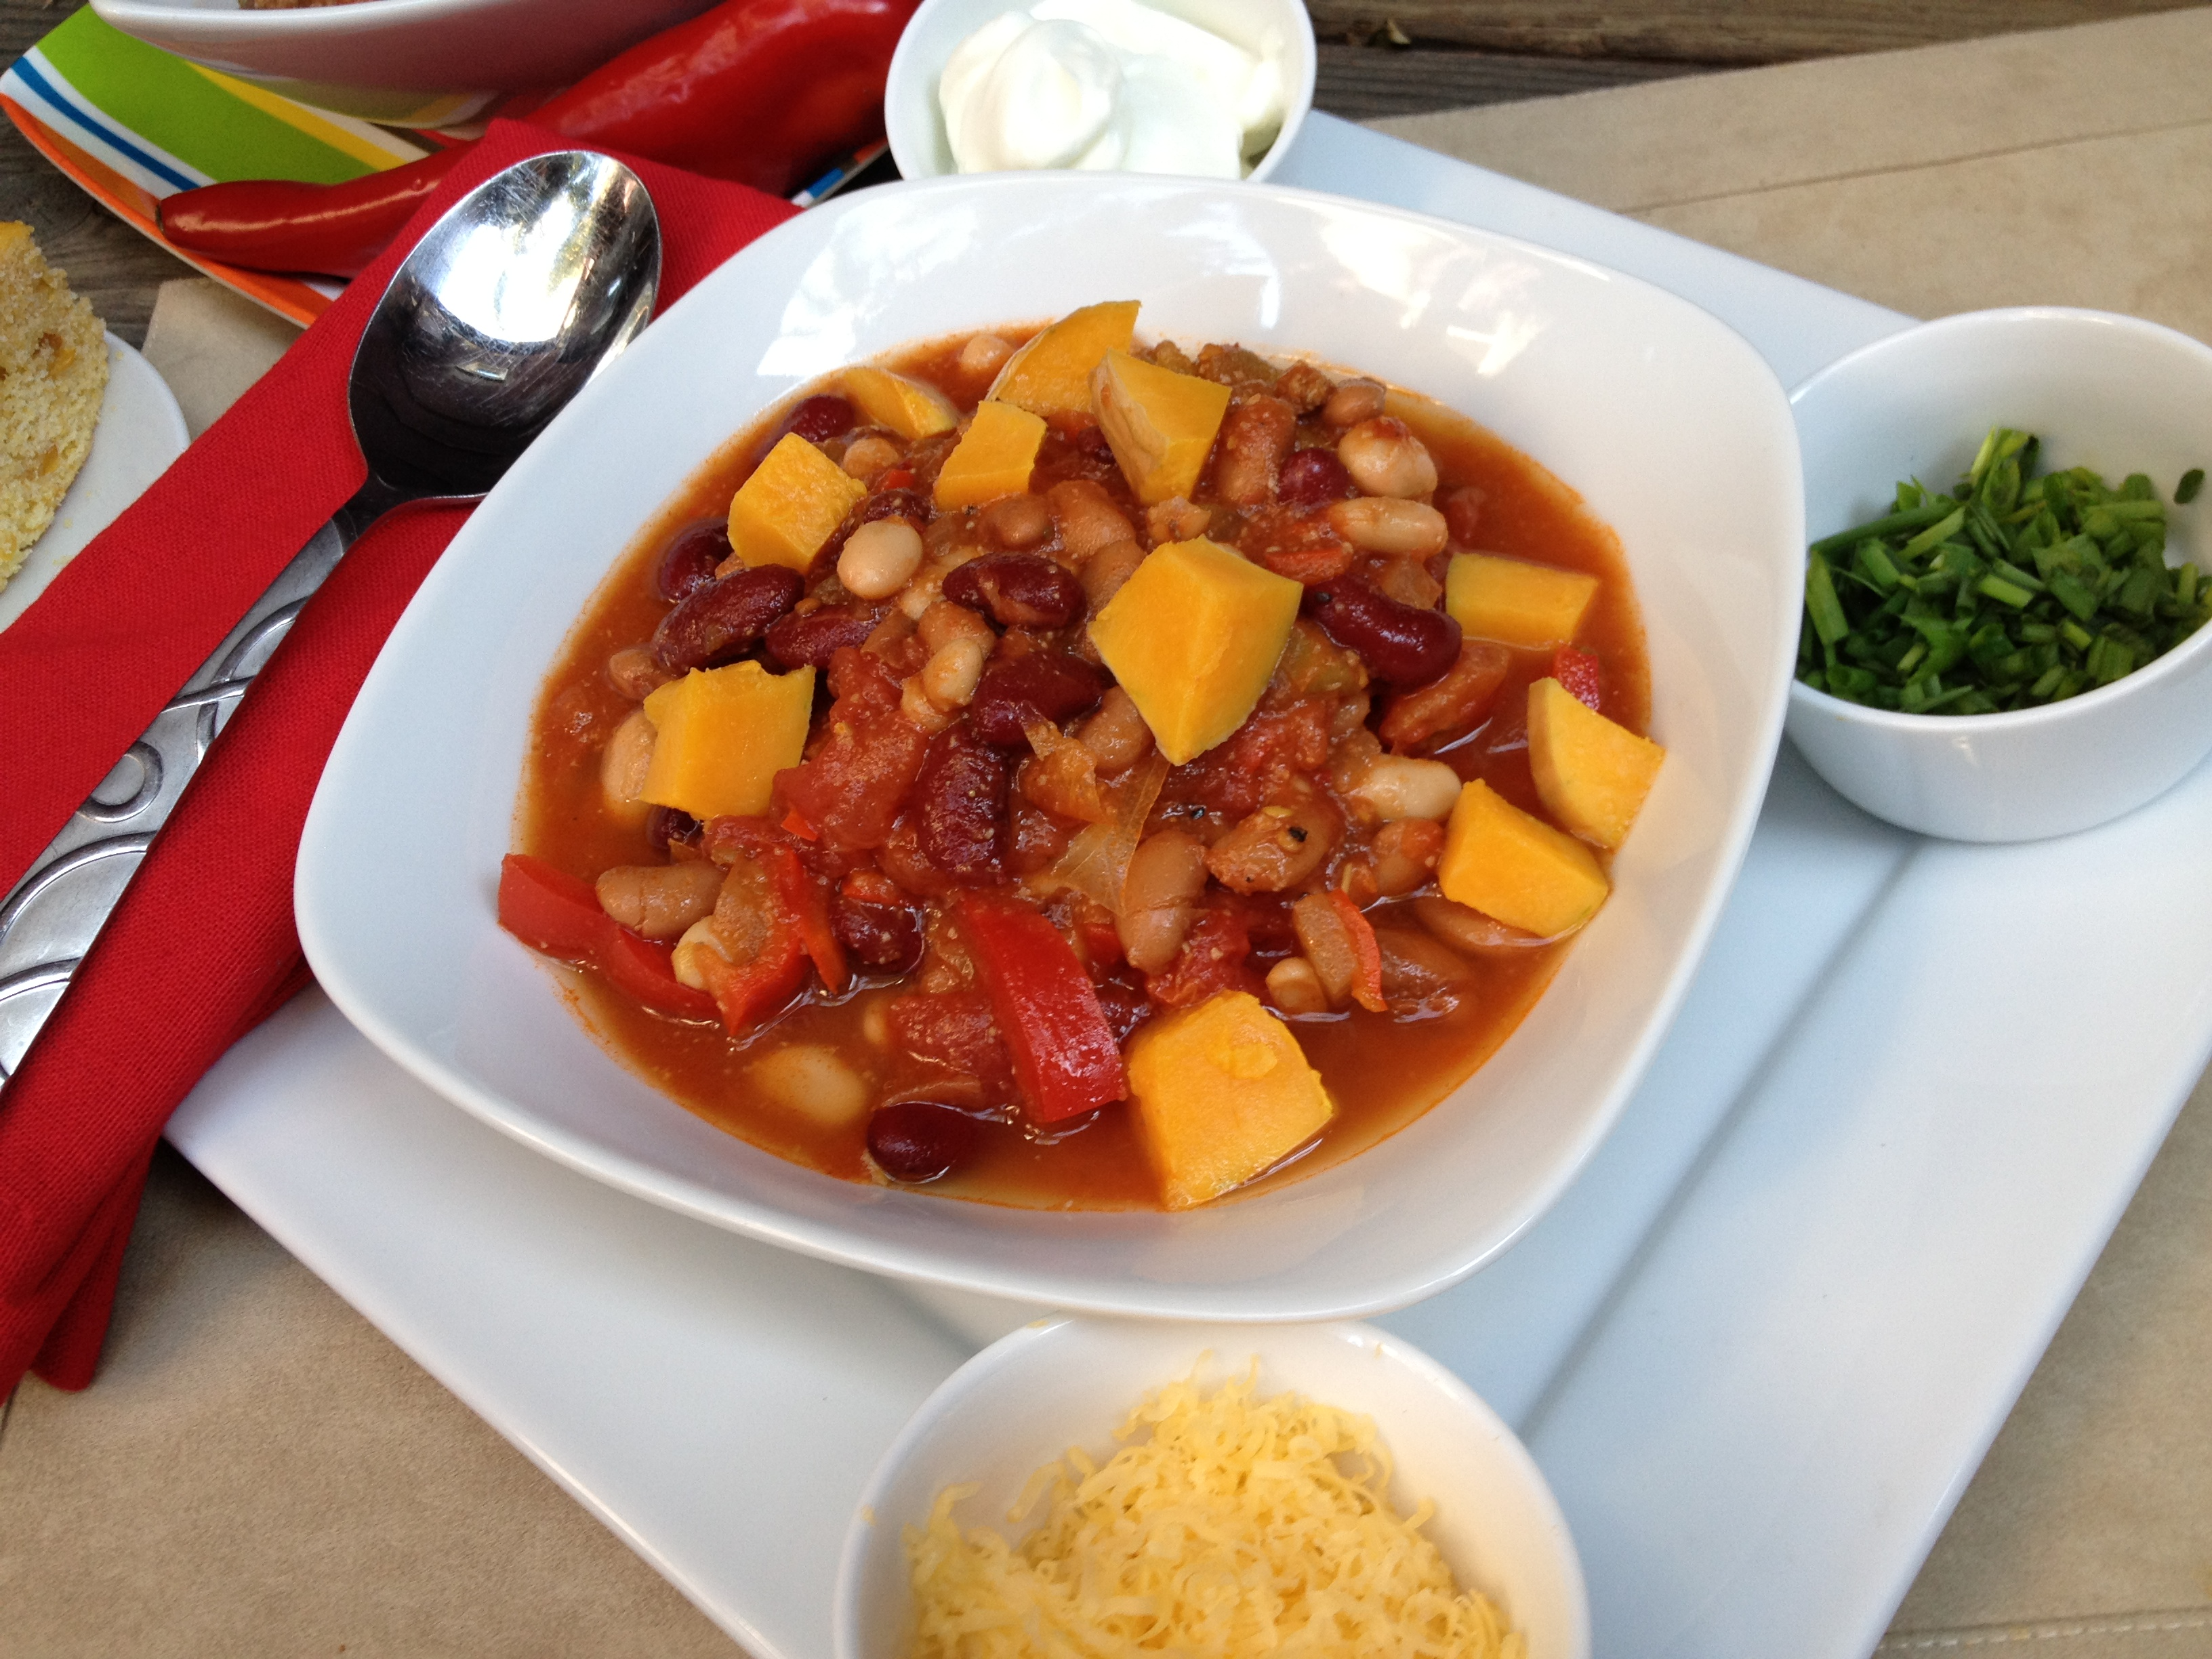 MONI Chili with all the fixings